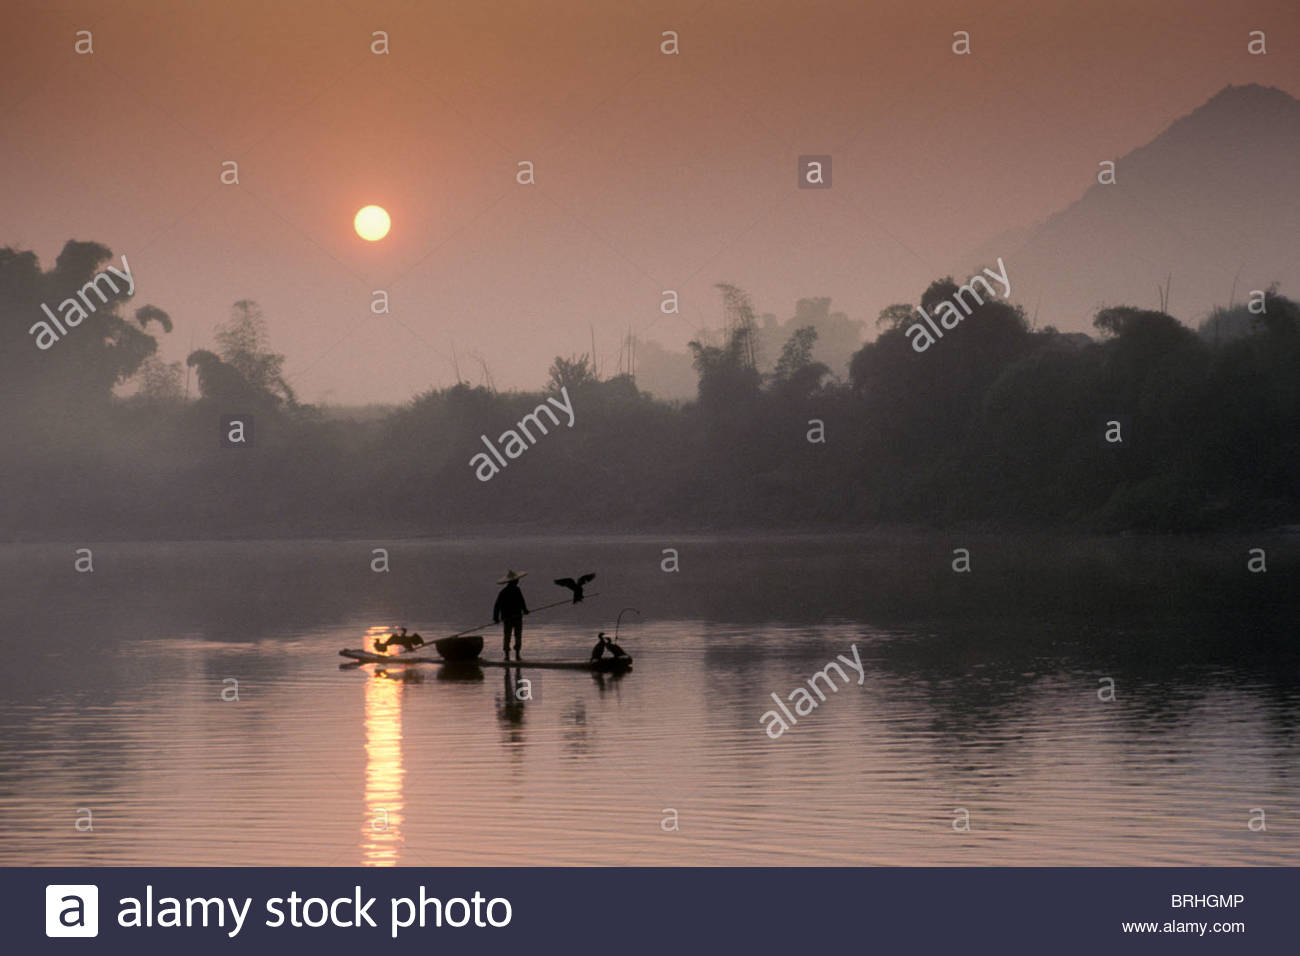 A cormorant fisher works the Li River in southern China at dawn. - Stock Image